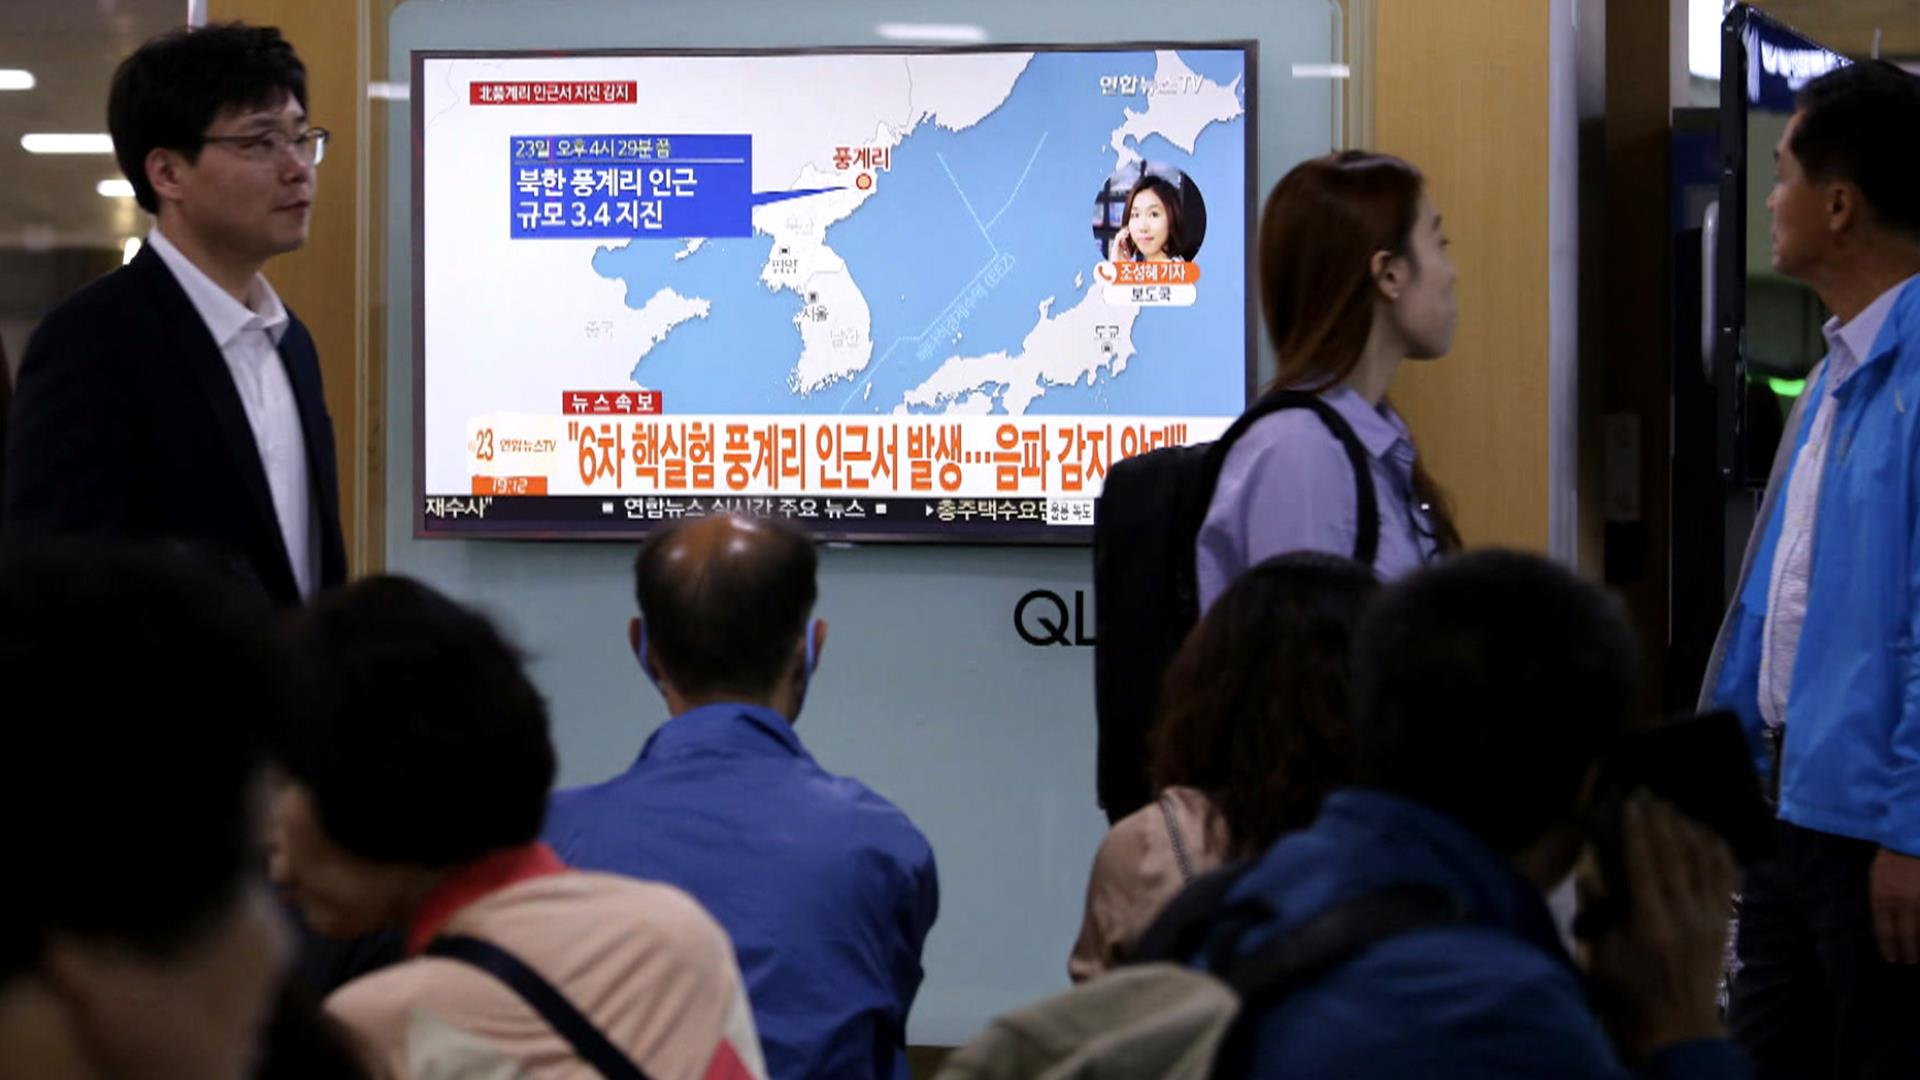 North Korea's Nuclear Test Site Could Be Unstable, Experts Say